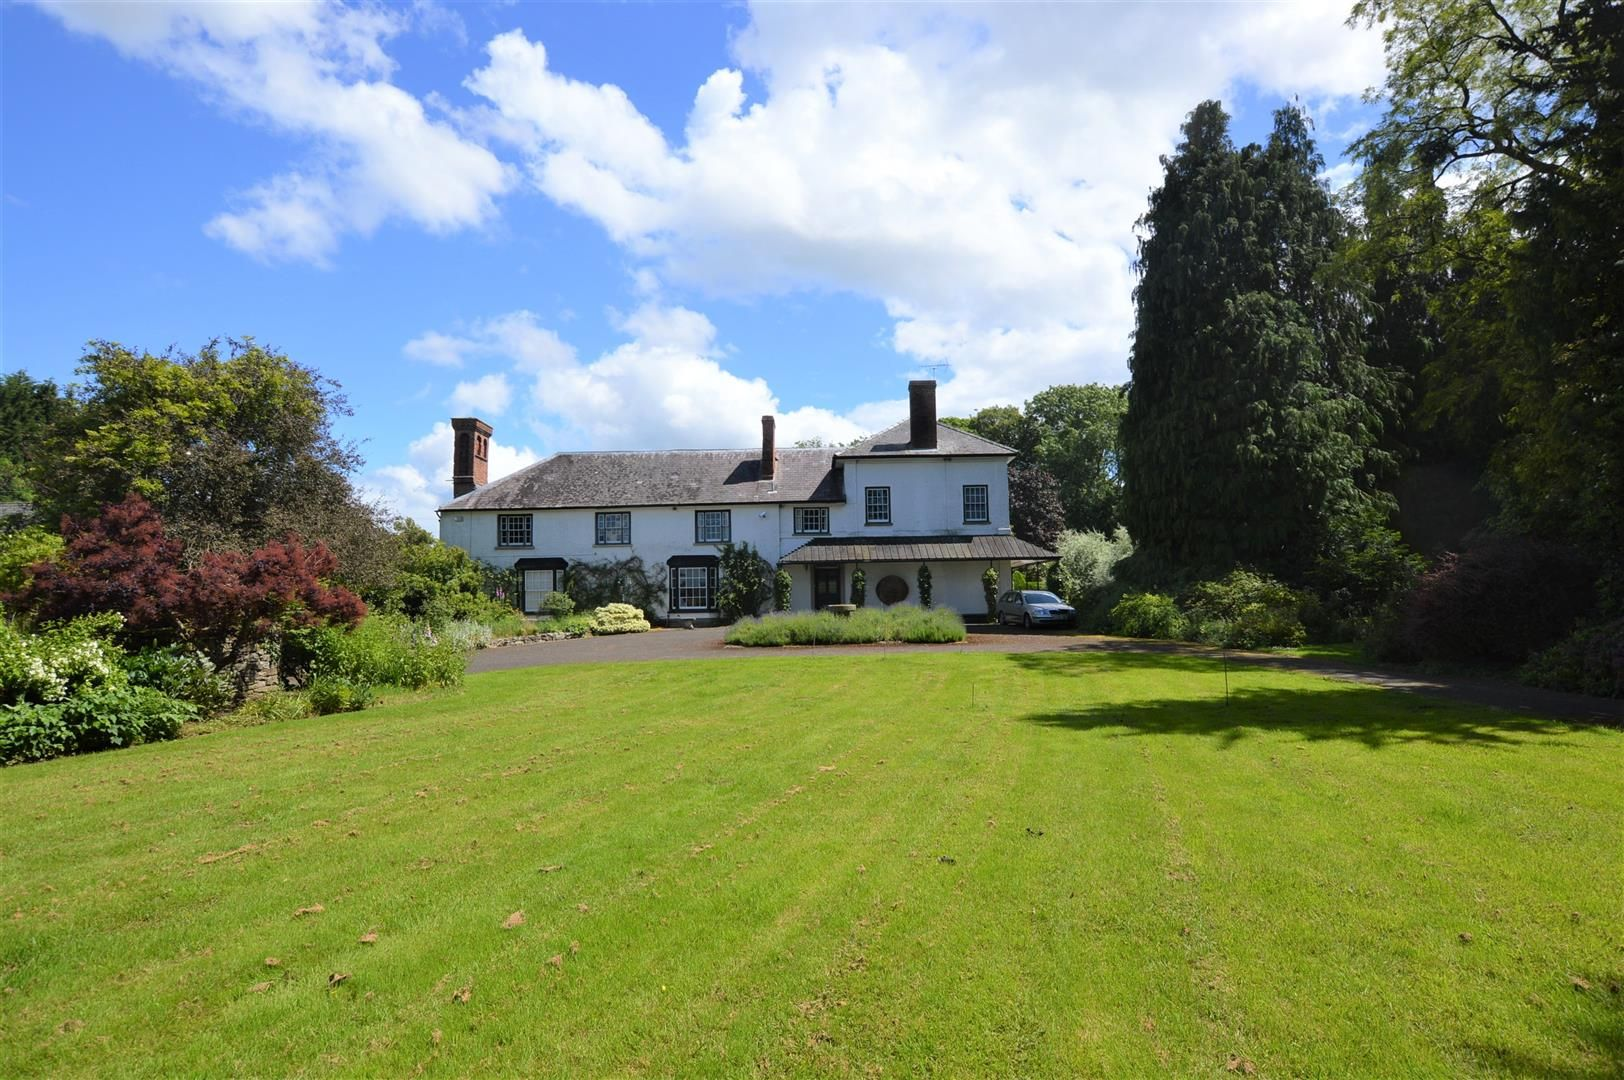 6 bed country-house for sale in Pembridge 1